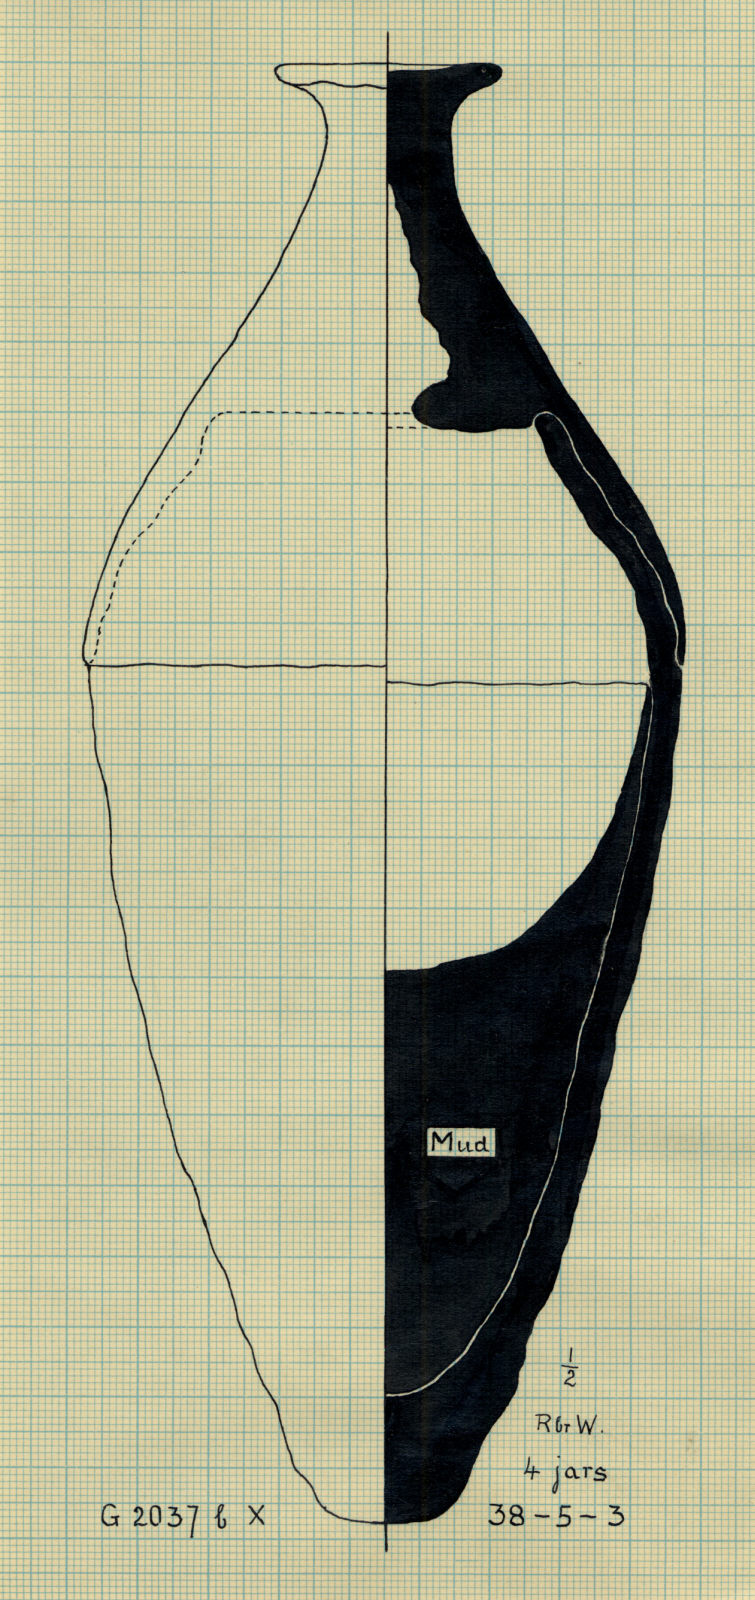 Drawings: G 2037, Shaft X: pottery, offering jar